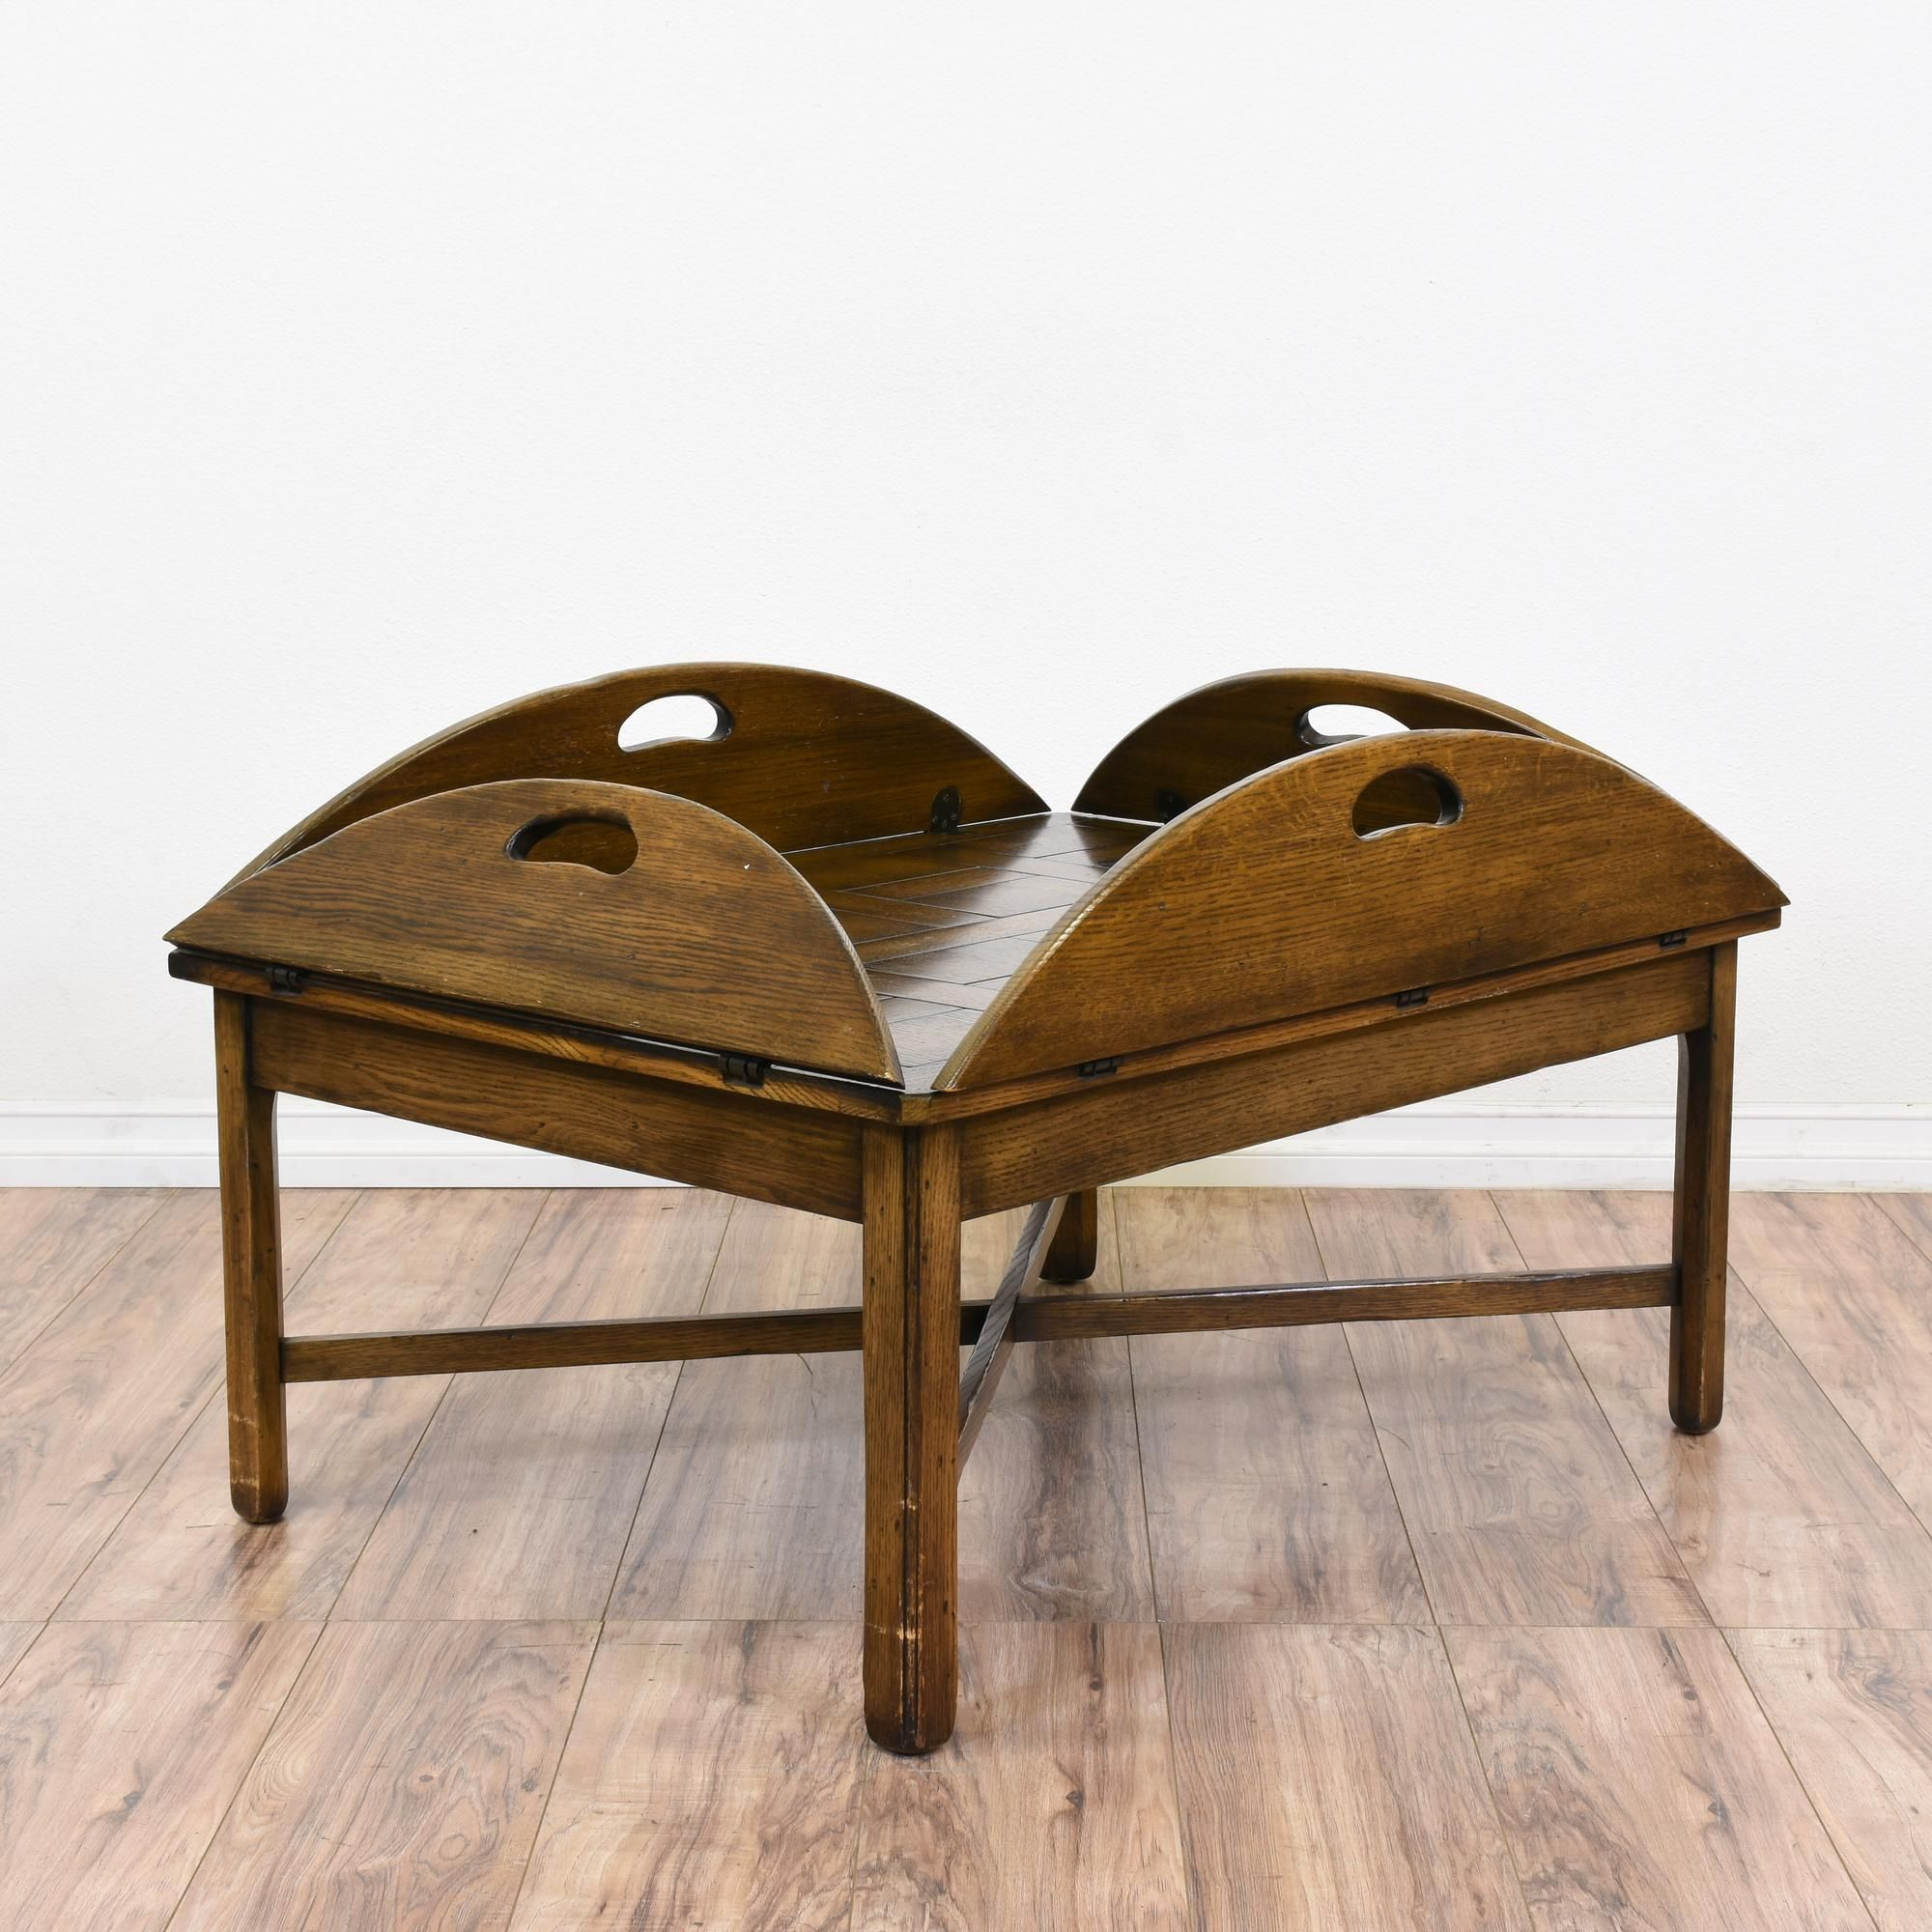 This Drop Leaf Coffee Table Is Featured In A Solid Wood With Glossy Walnut Finish Good Condition 4 Curved Side Leaves